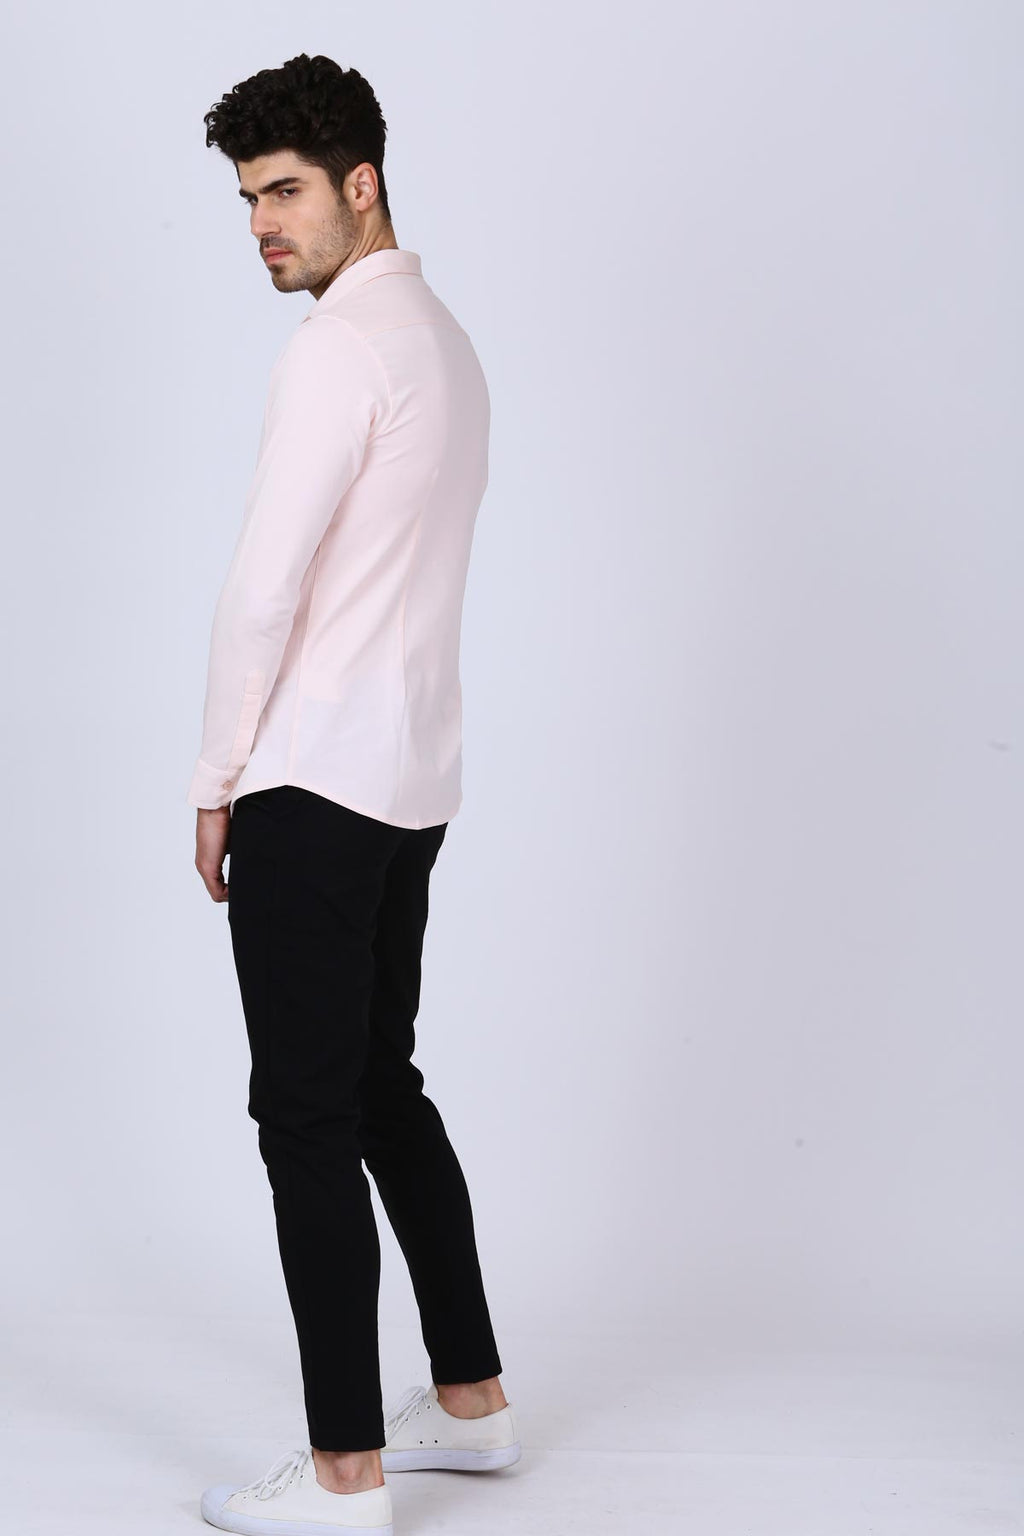 The Knit Light Pink